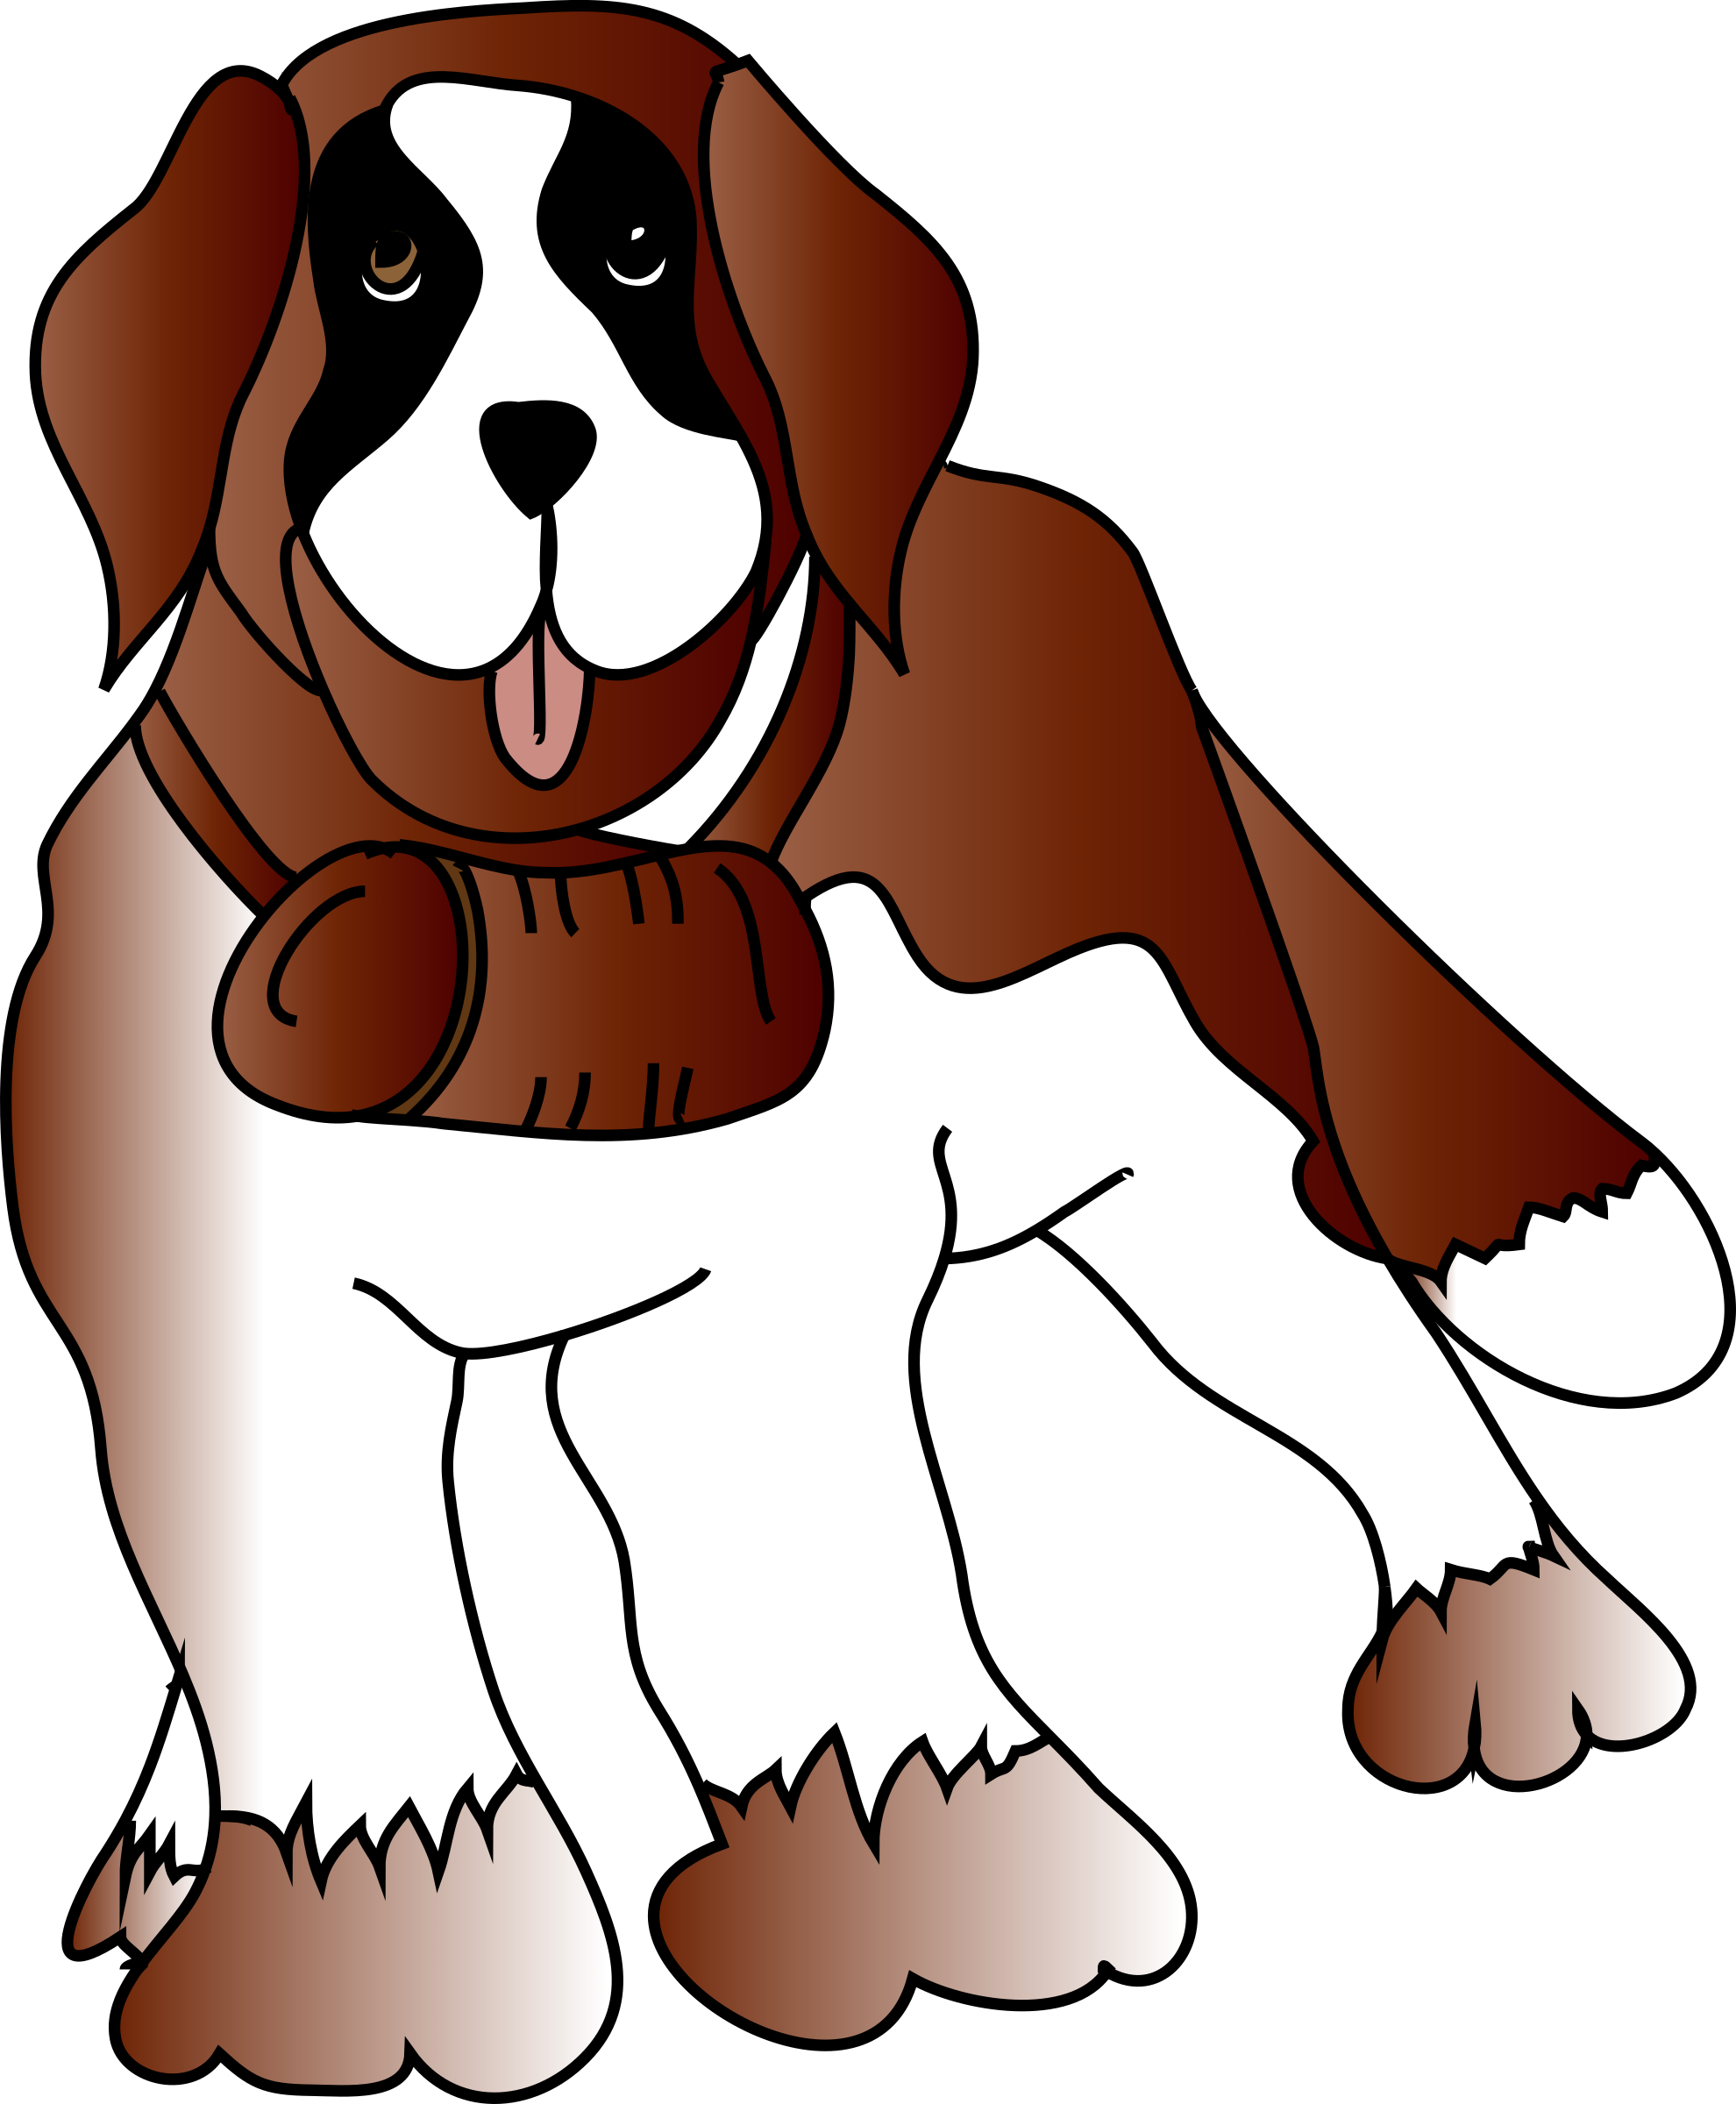 St. Bernard clipart By spevi saint dog Clipart